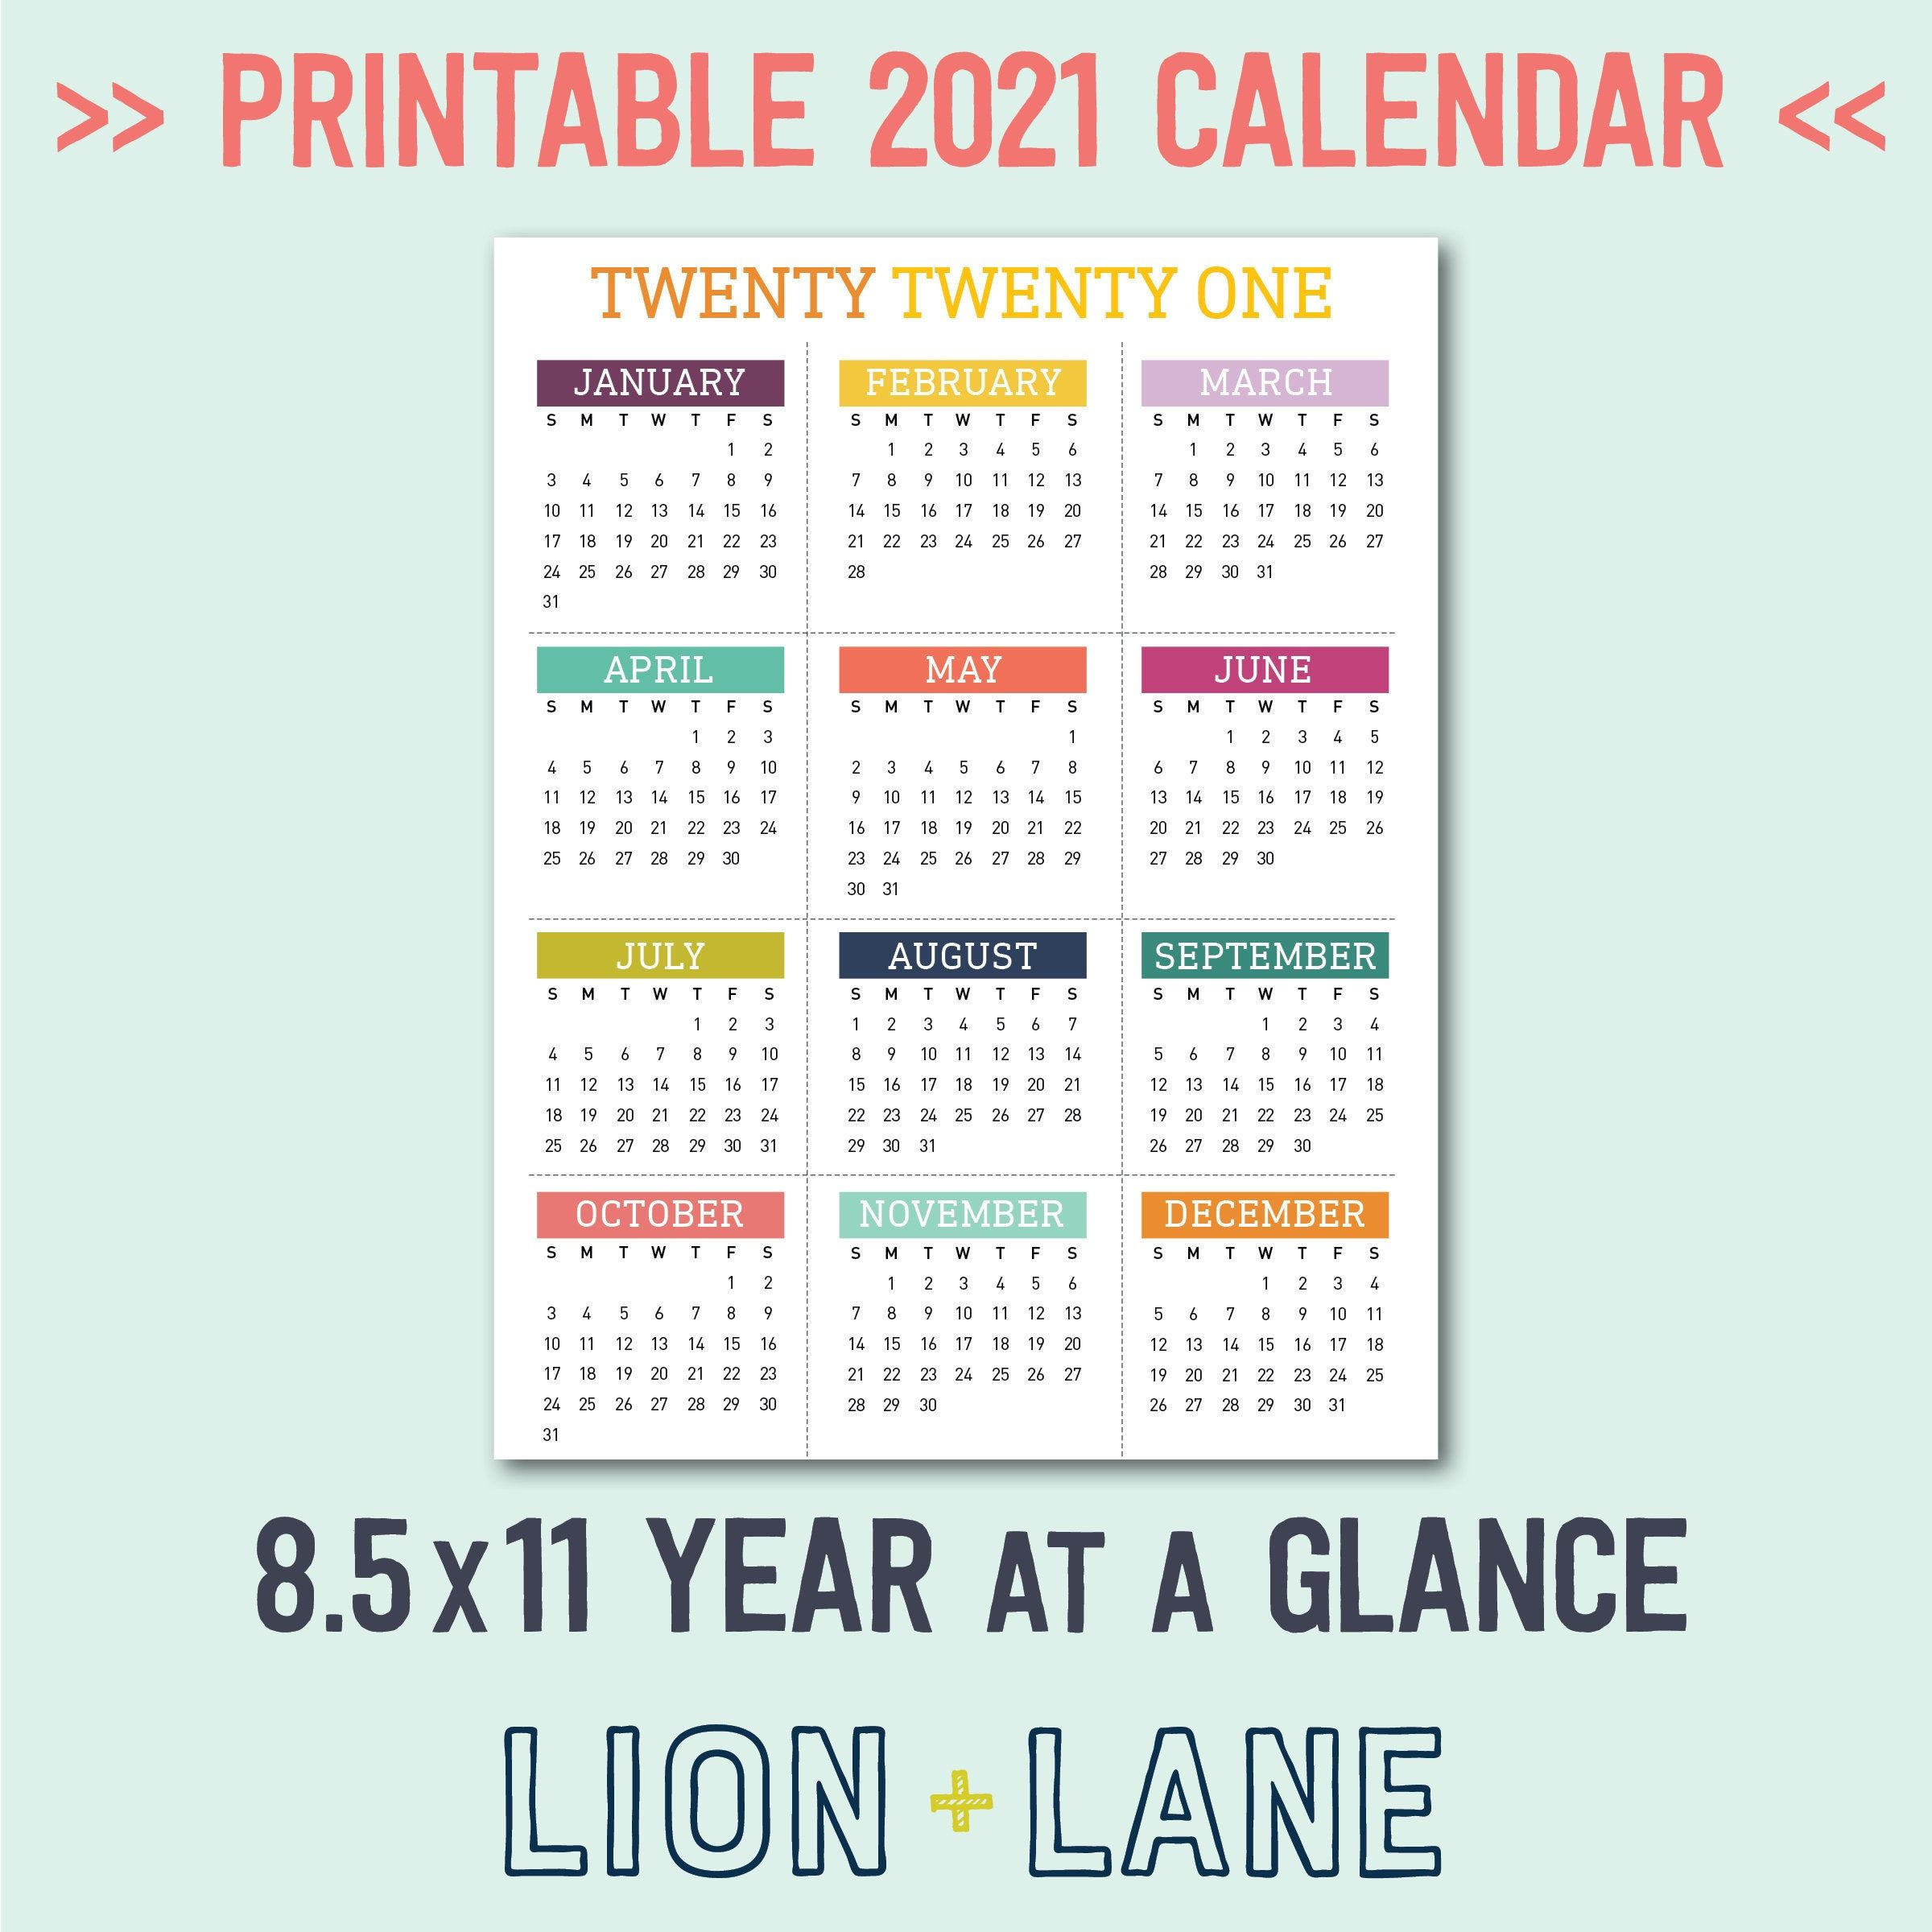 2021 Printable Calendar Year At A Glance 8.5X11 Letter within Printable National Day Calendar 2021